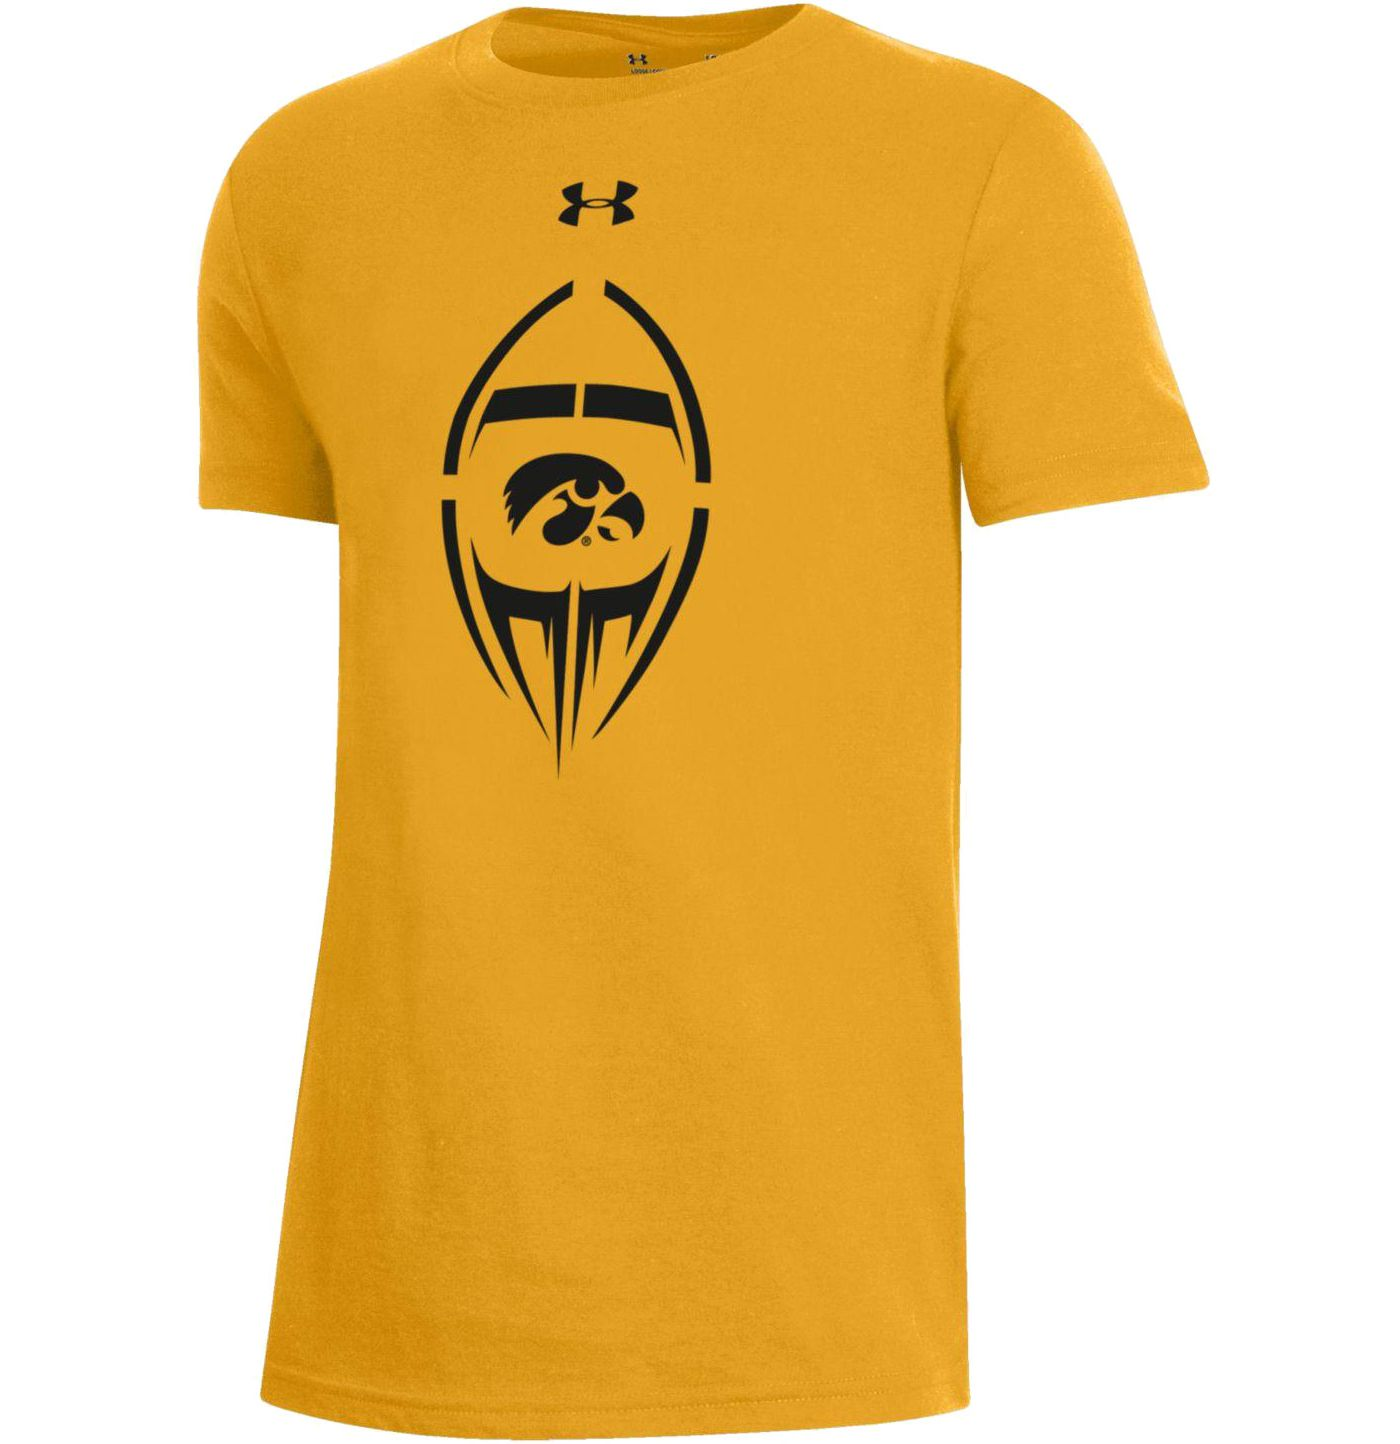 Under Armour Youth Iowa Hawkeyes Gold Performance Cotton Football T-Shirt